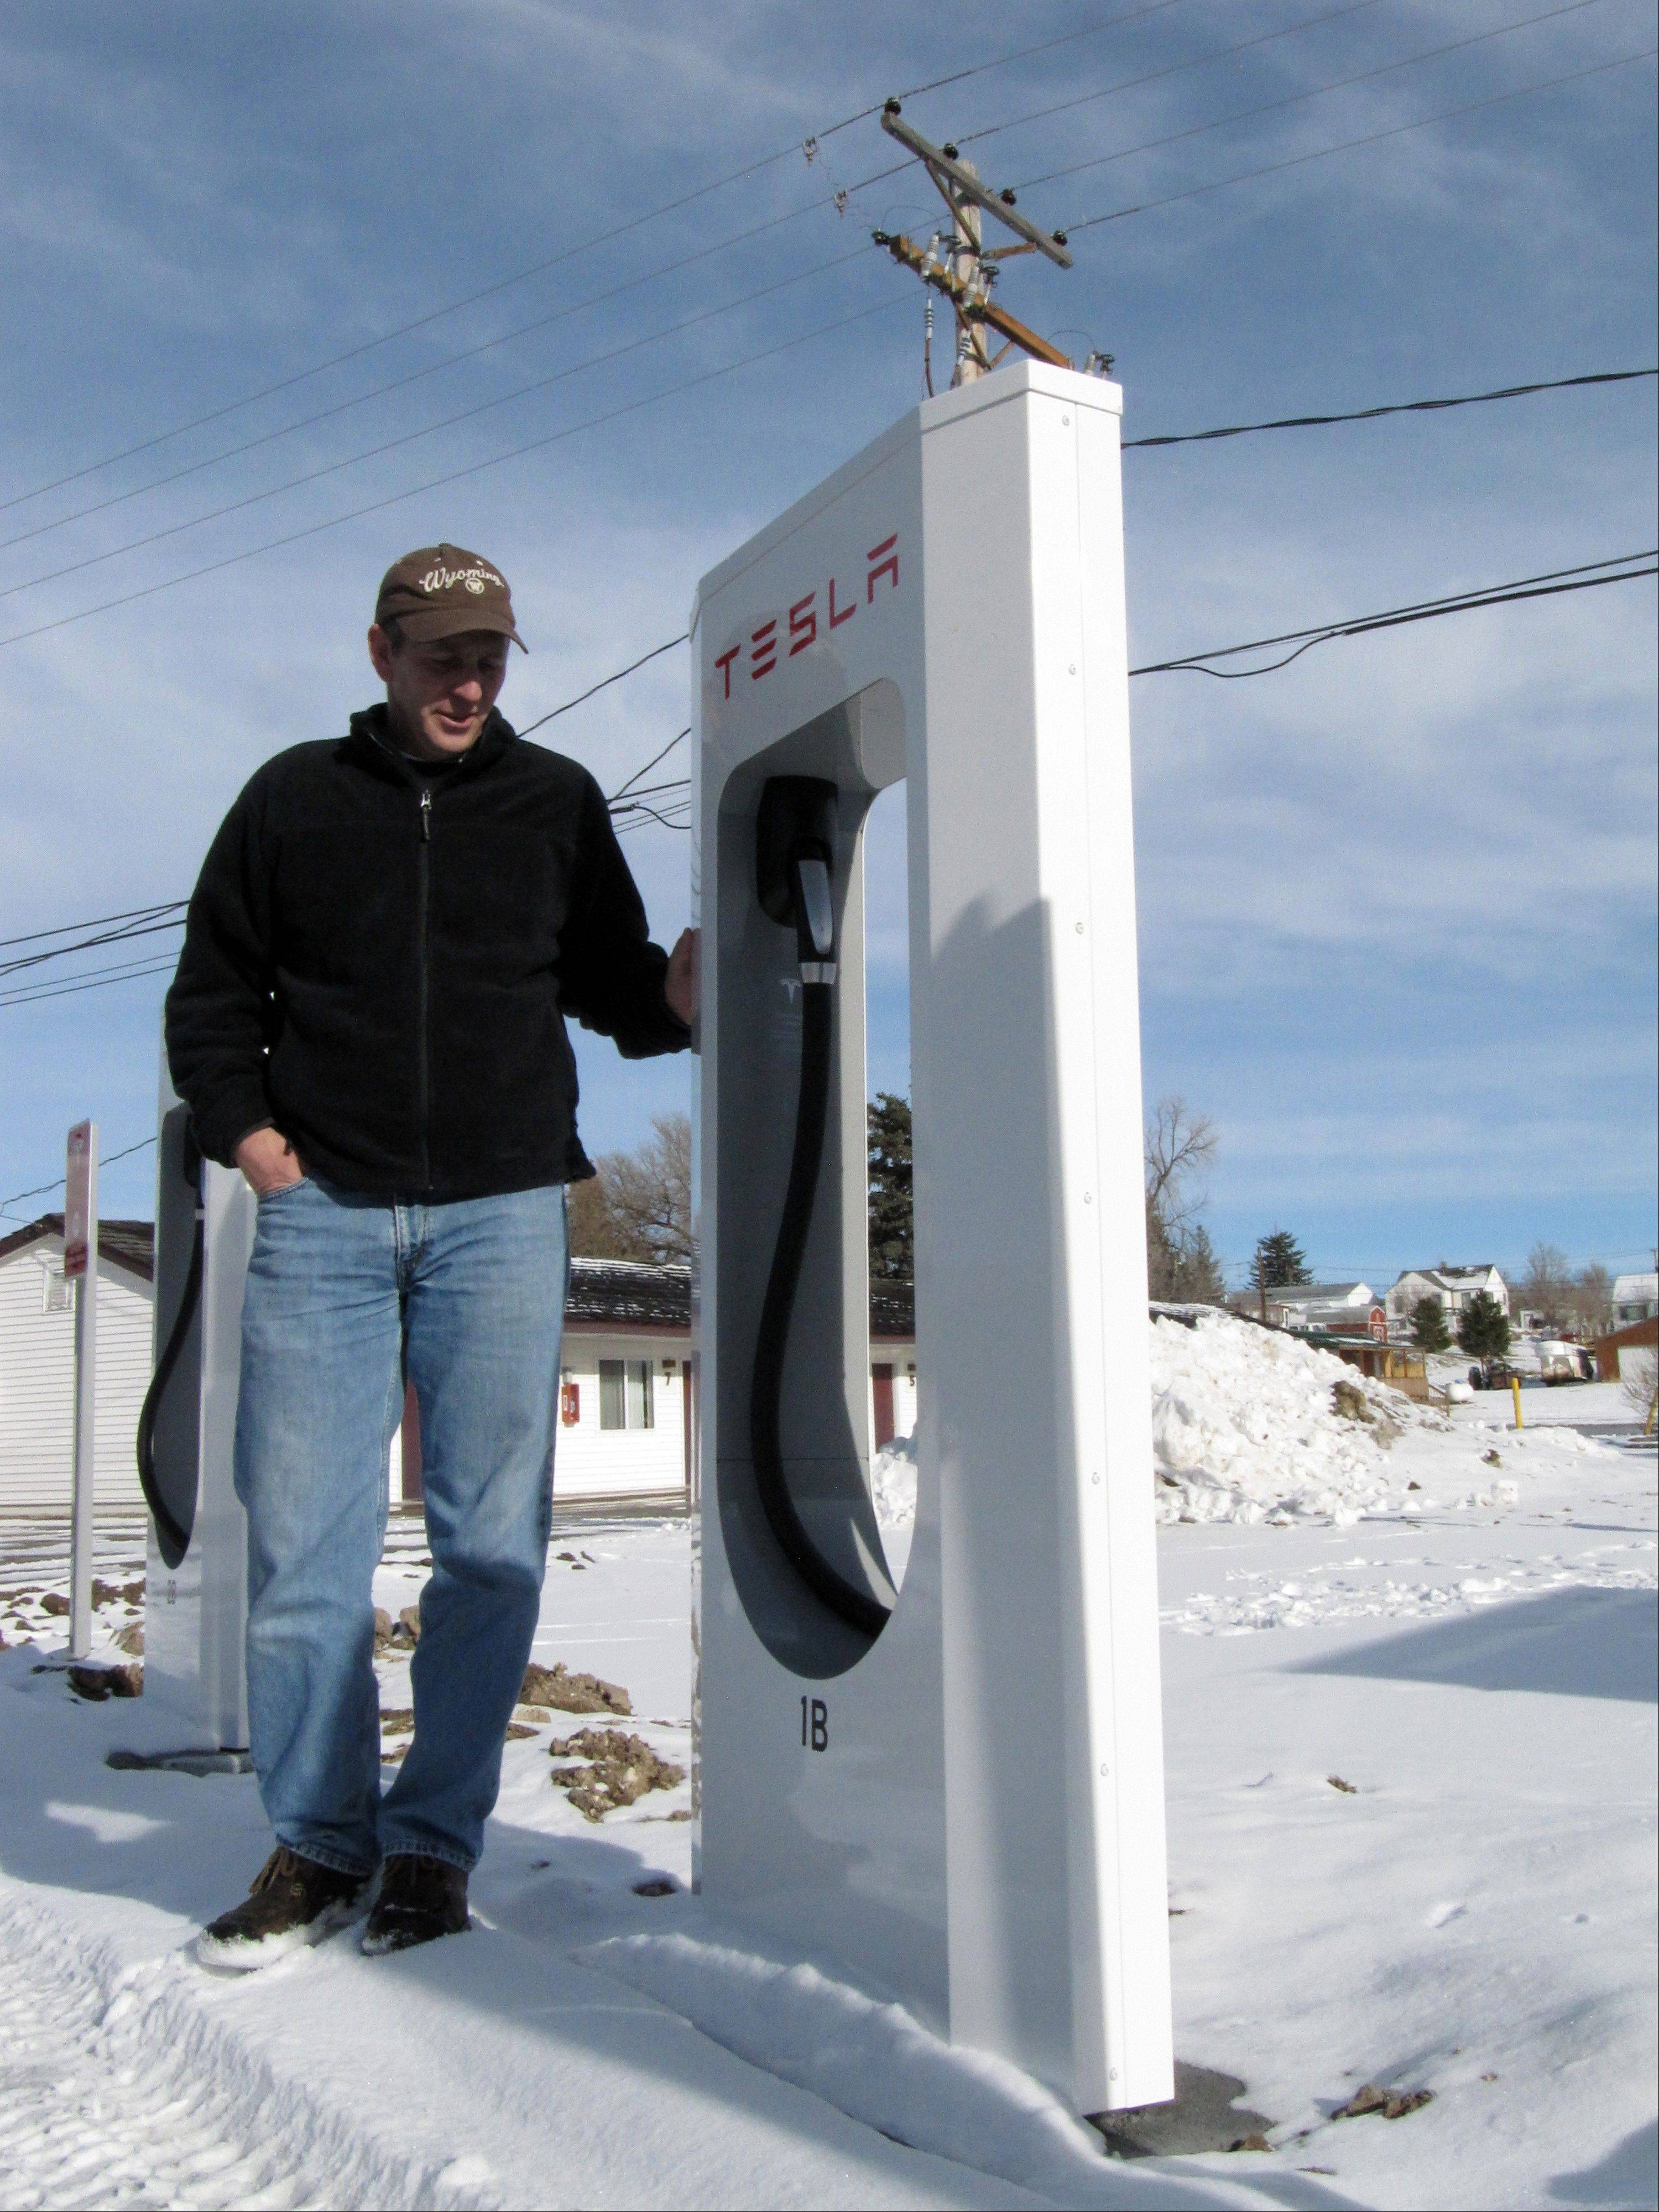 Mark Kupke, owner of the Covered Wagon Motel in Lusk, Wyo., stands next to one of four Tesla Supercharger units installed in December in the hotel courtyard. A Supercharger can recharge a Tesla�s depleted battery pack to a 90-percent level within 45-50 minutes, several times faster than any other charging option for the electric cars. Lusk is on the route of Tesla�s first network of coast-to-coast Supercharger stations. The quick-charge stations promise to make cross-country travel by Tesla much quicker and easier.